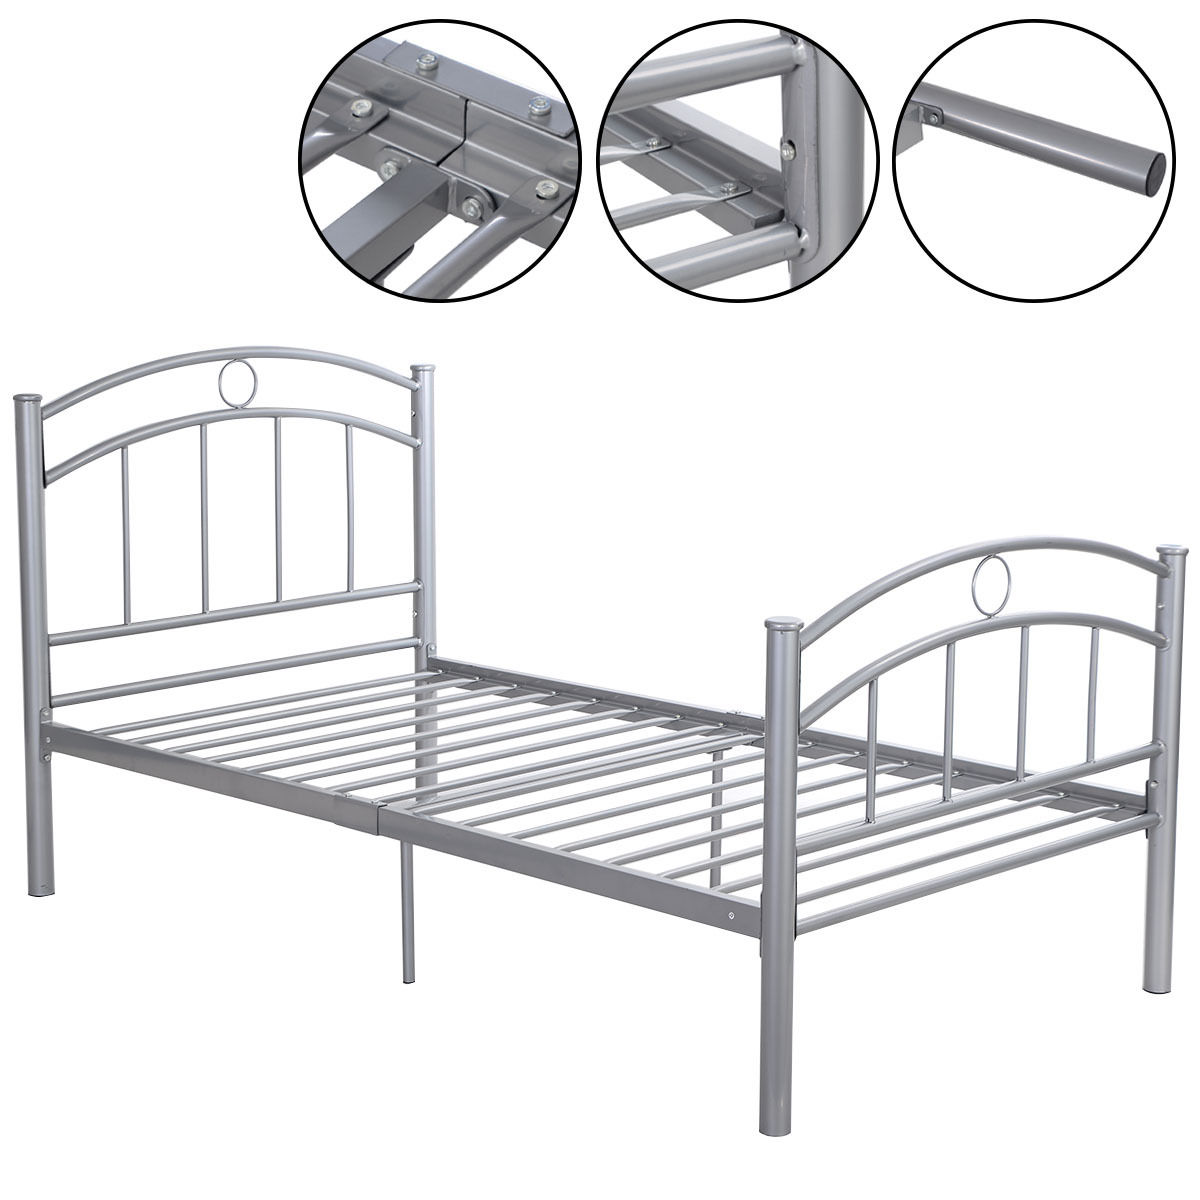 Costway 83''x42''x35'' Black Metal Bed Frame Platform Twin Size Home Furniture (Sliver) by Costway